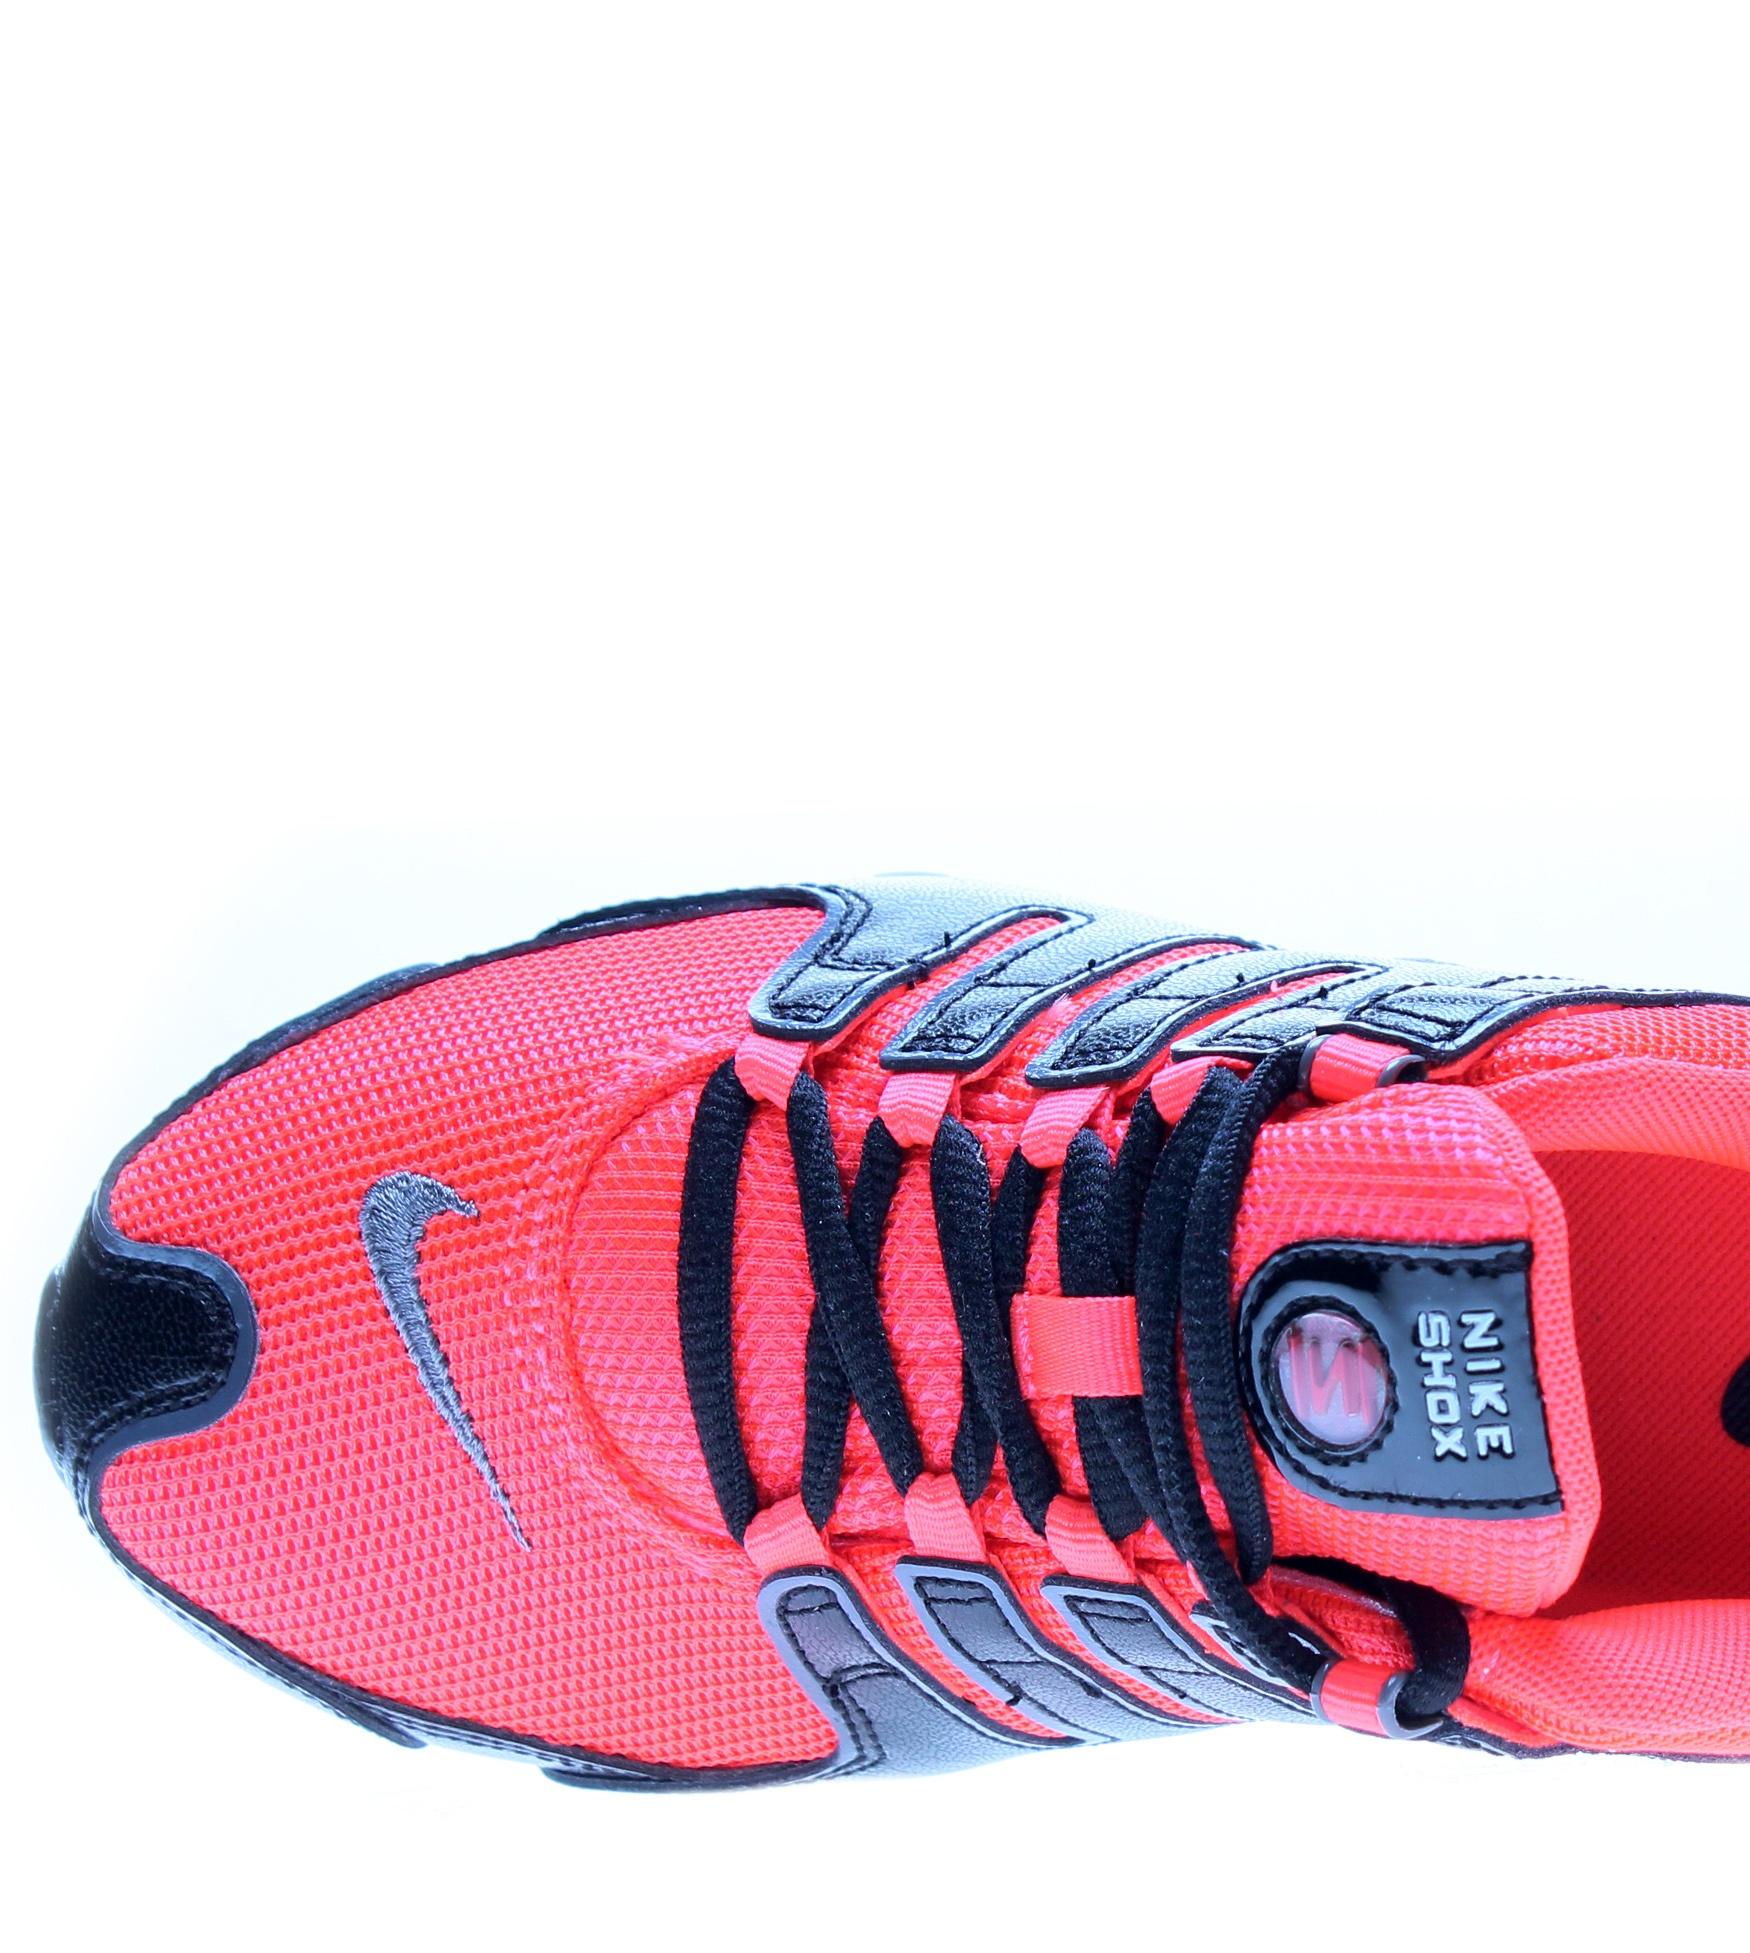 31158dda63afe6 Nike - Nike Shox NZ Laser Crimson Women s Running Shoes 636088-600 -  Walmart.com